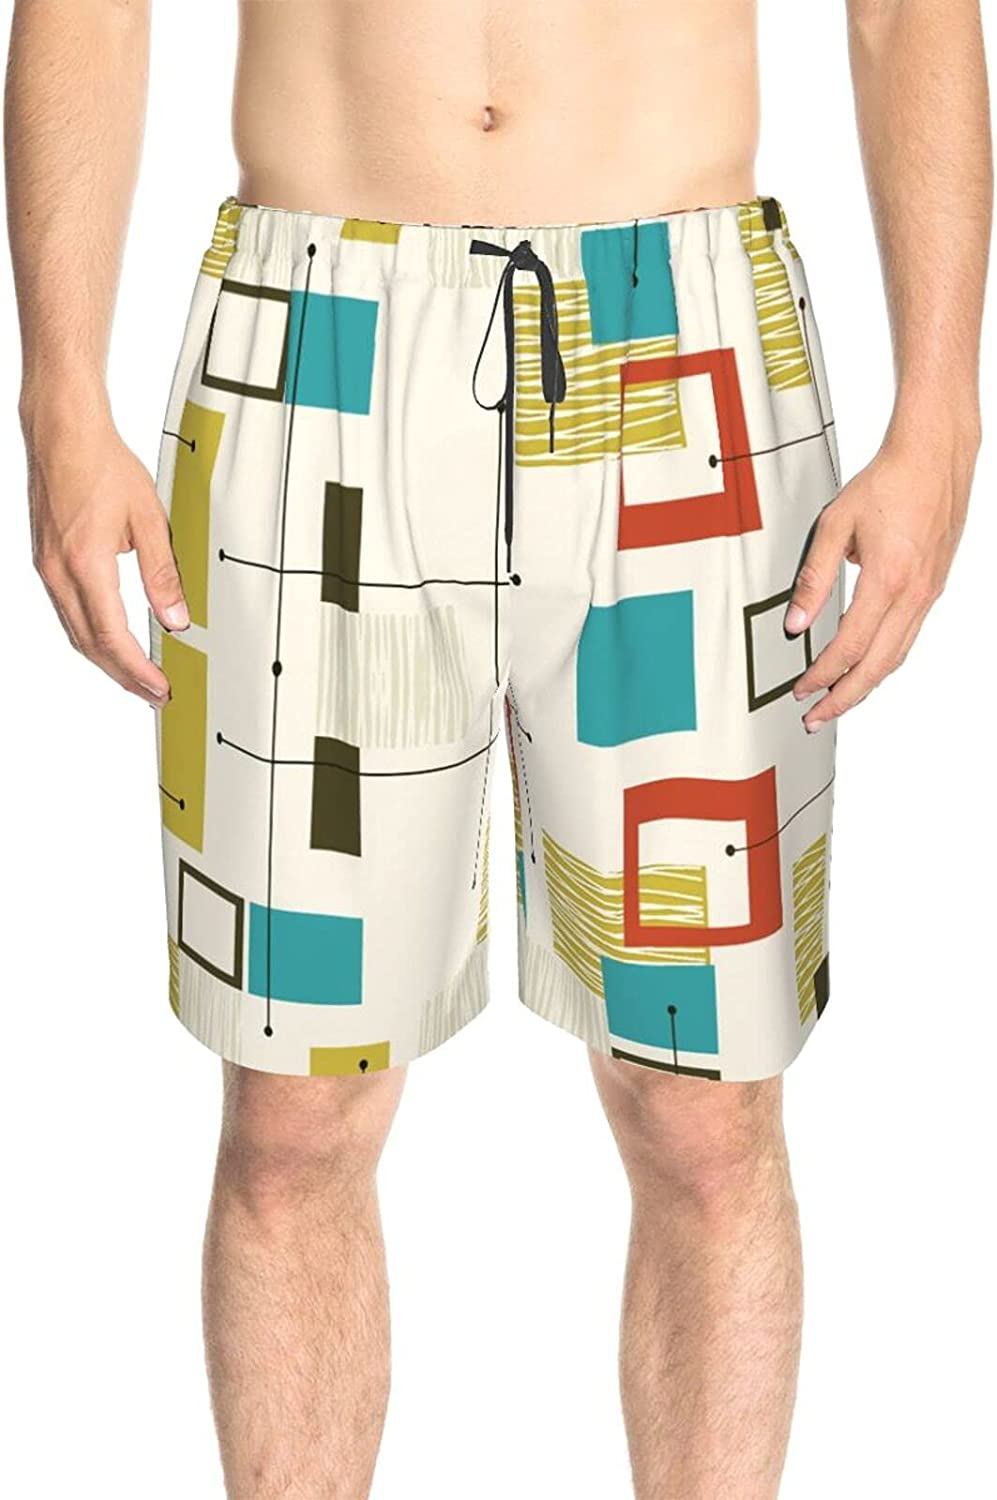 JINJUELS Mens Bathing Suits Abstract Geometric Figure Lines Swim Board Shorts Quick Dry Comfy Summer Boardshorts with Liner